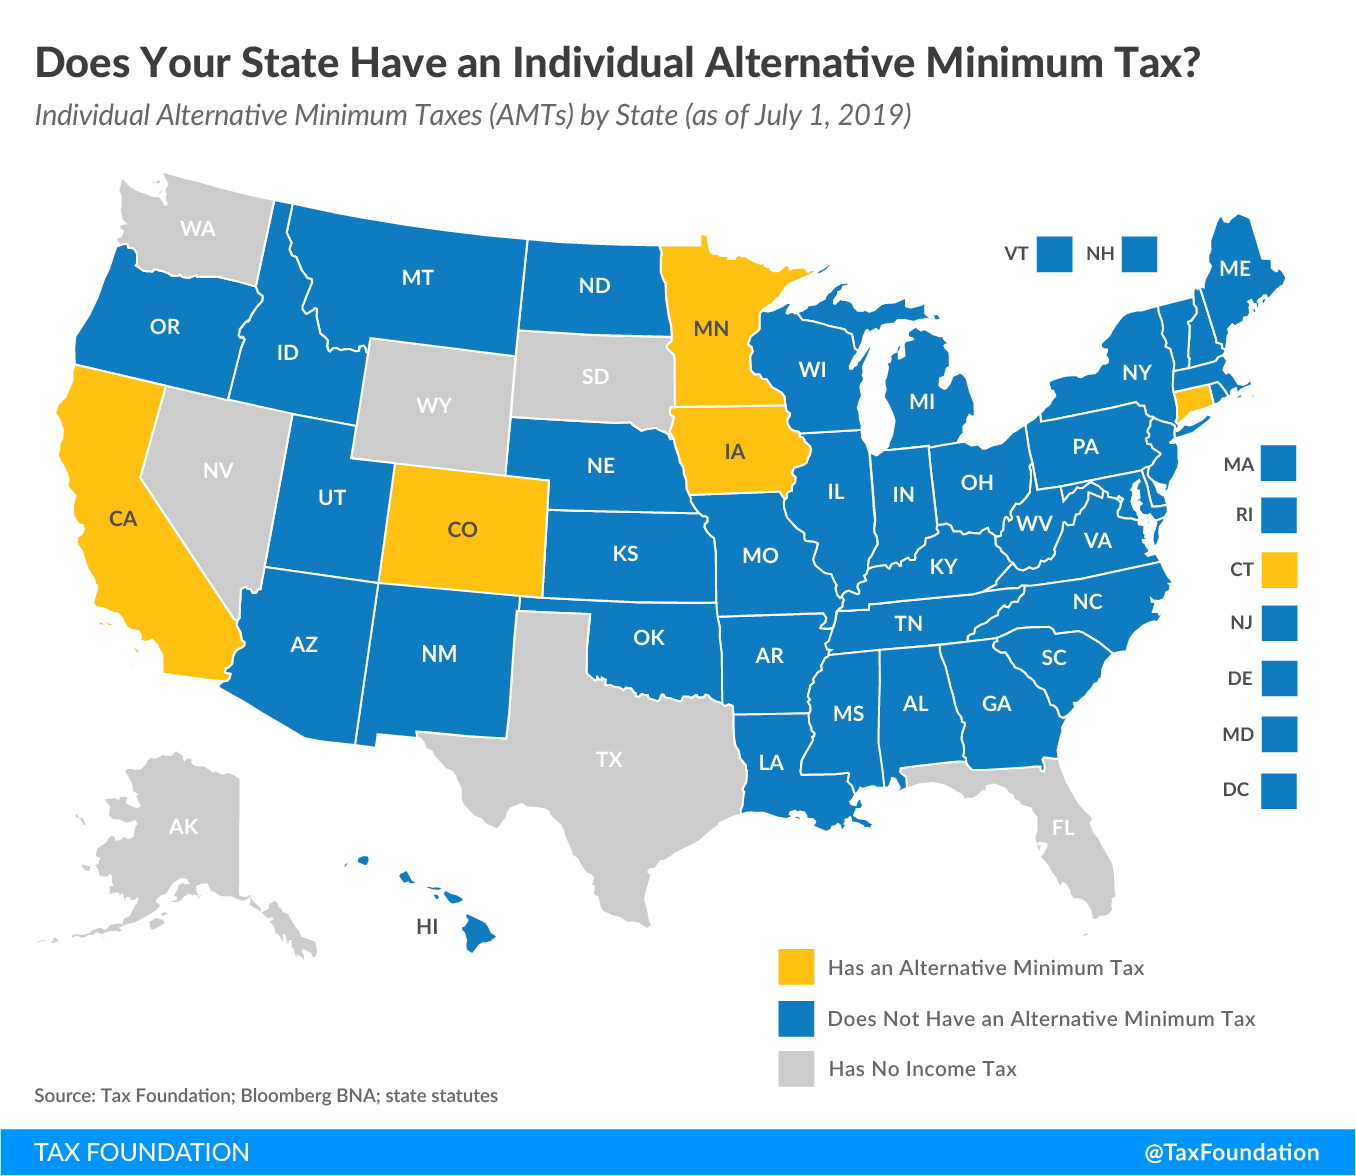 state individual alternative minimum tax, state individual alternative minimum taxes, state individual AMTS 2019, state AMTs